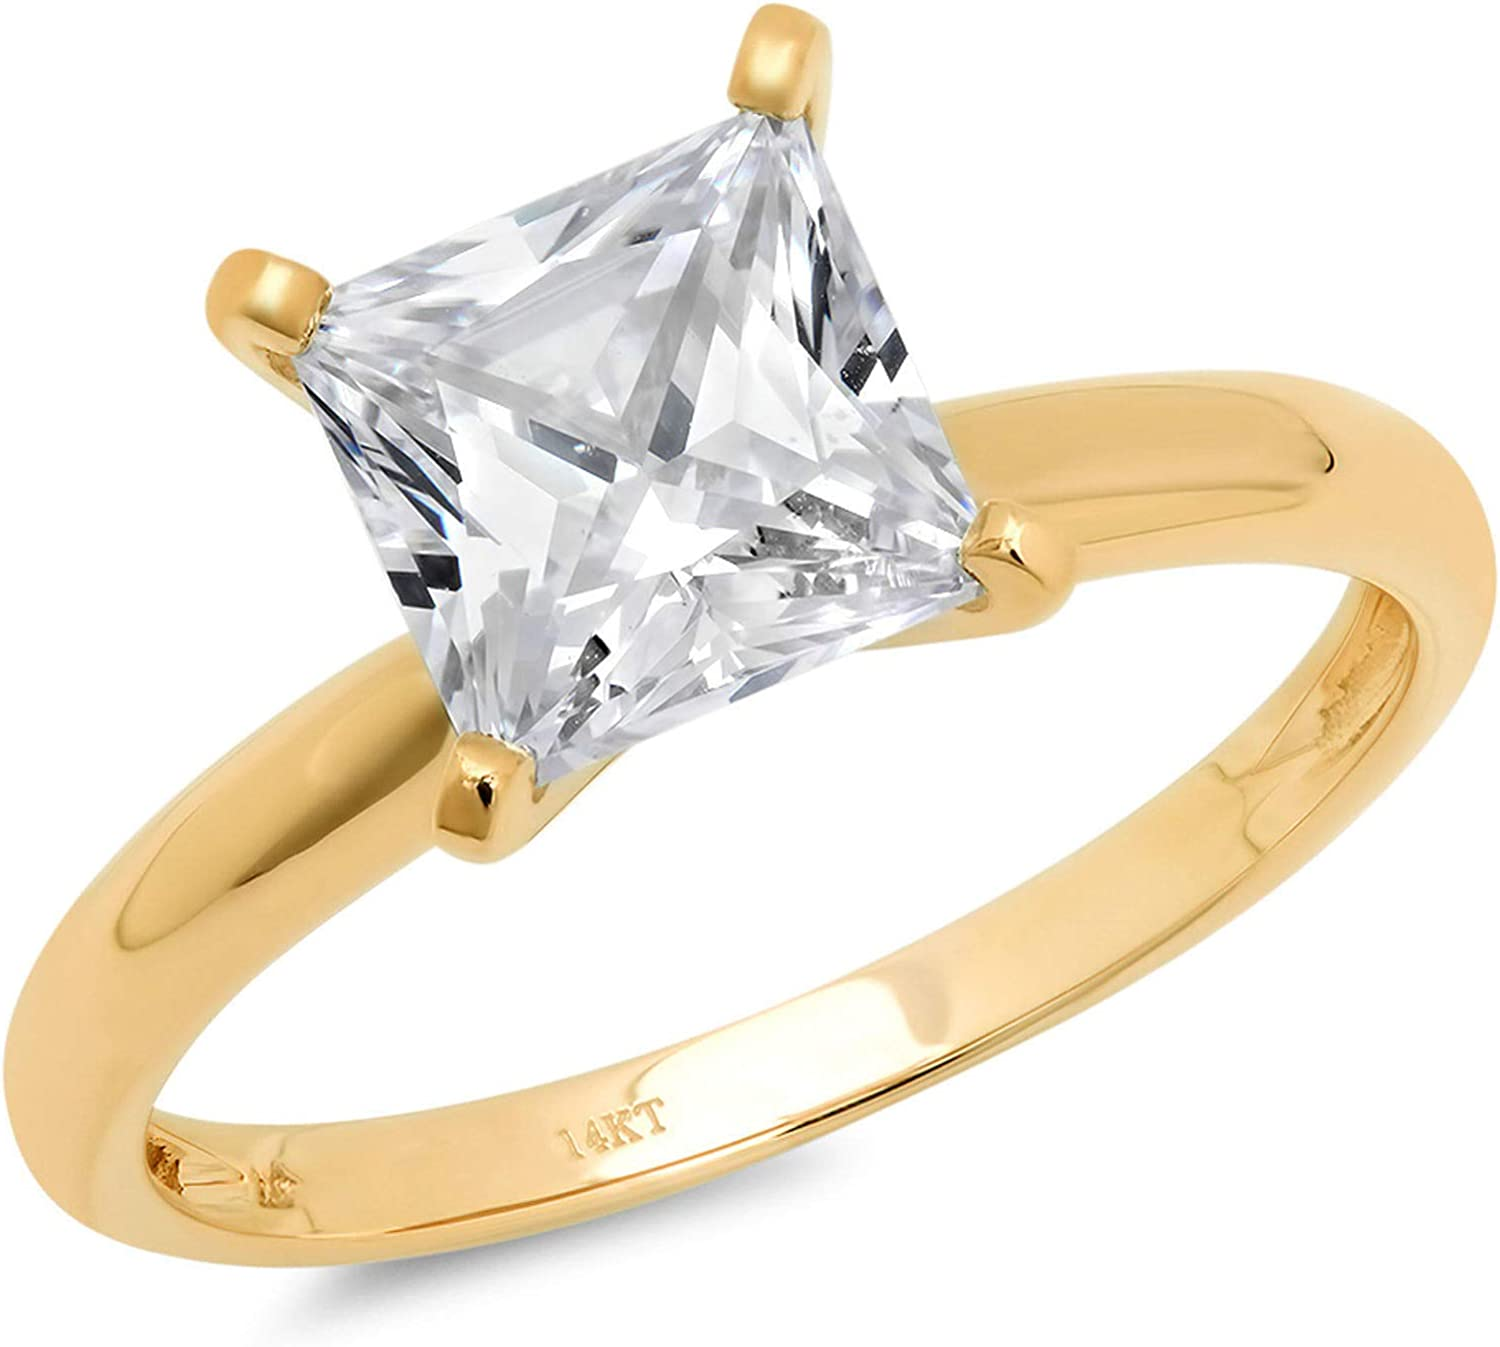 Clara Pucci 1.7 Ct Princess Brilliant Cut Solitaire Engagement Promise Wedding Bridal Anniversary Ring 14K Yellow Gold